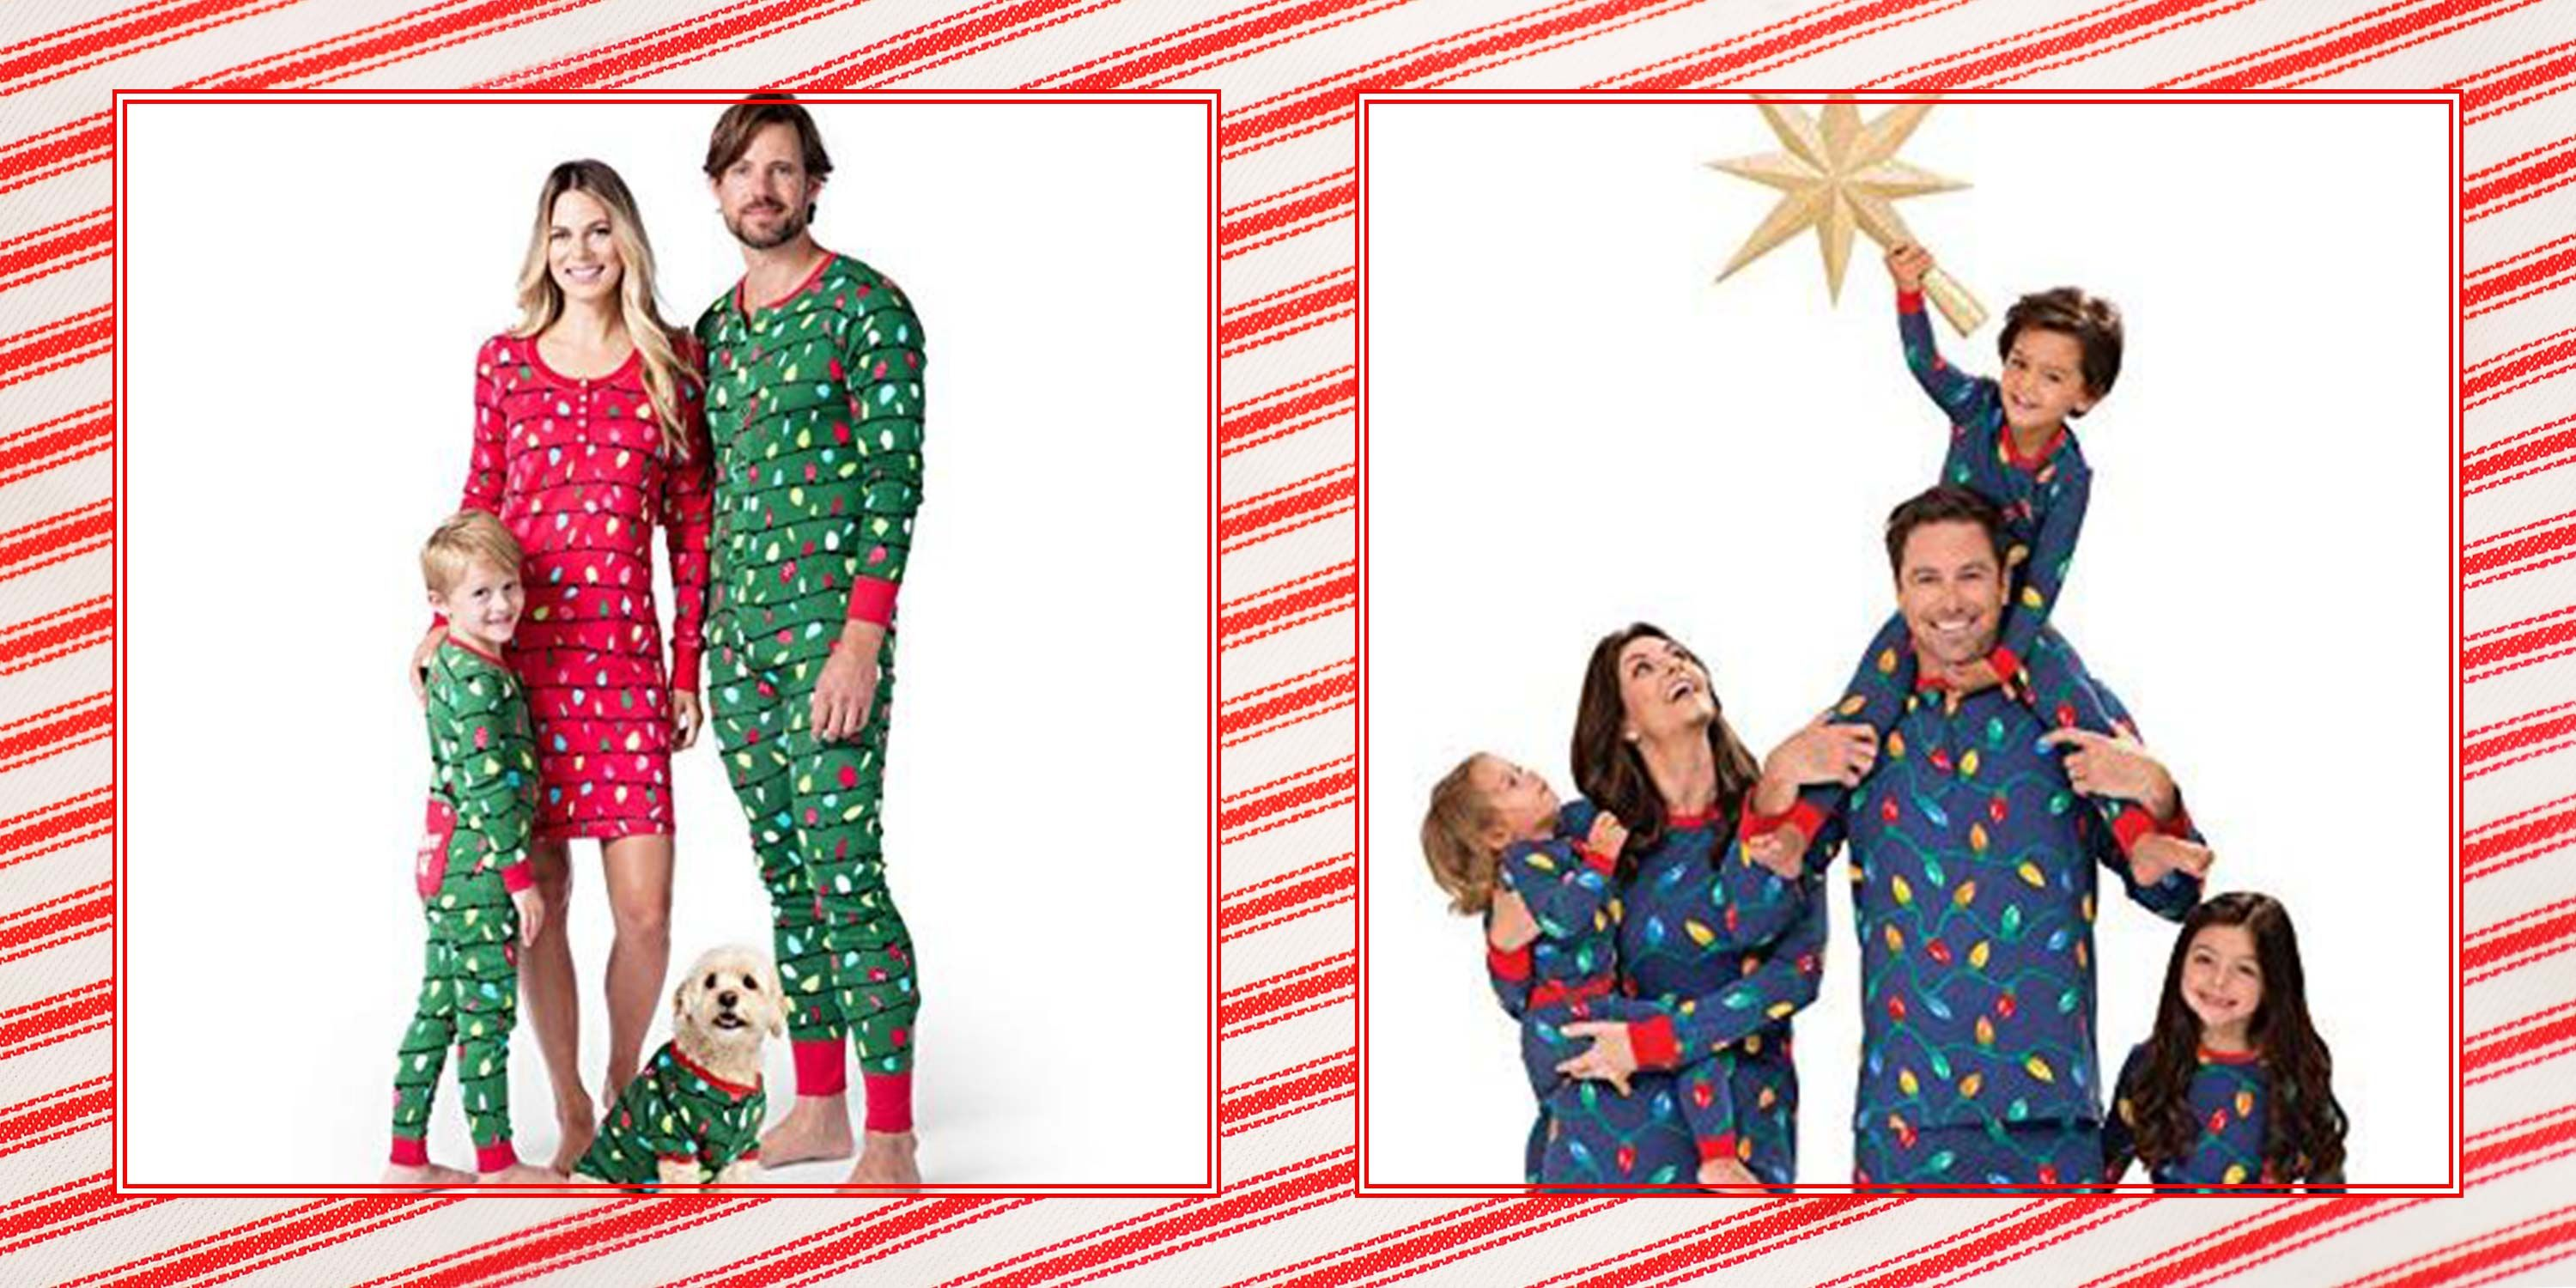 Family Christmas Pajamas With Dog.34 Best Matching Family Christmas Pajamas Funny And Cheap